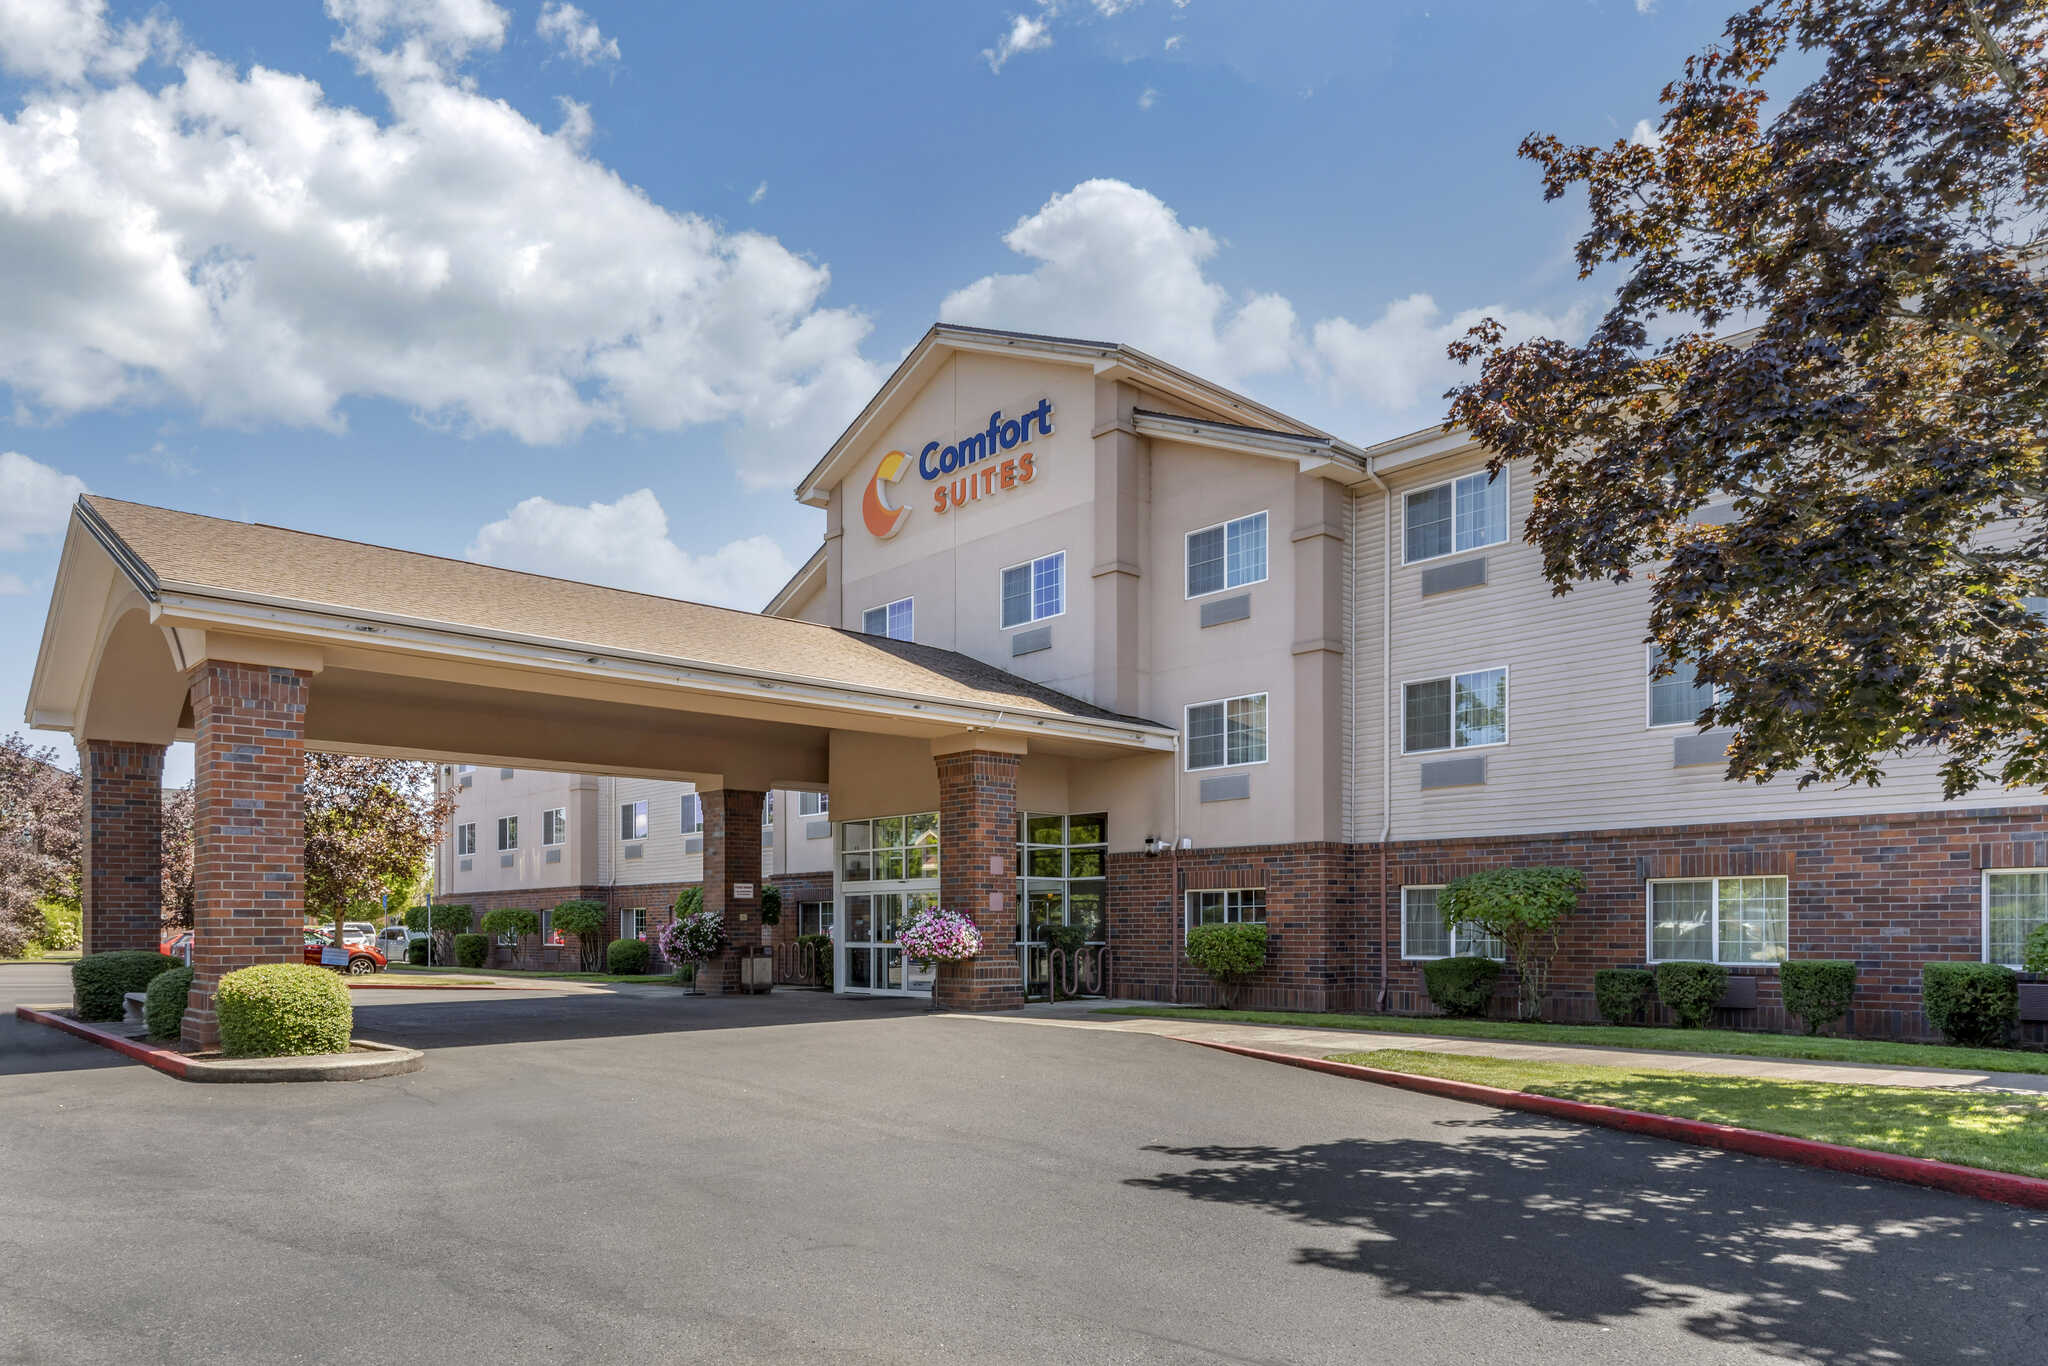 Comfort Suites Linn County Fairground And Expo Albany Hotel